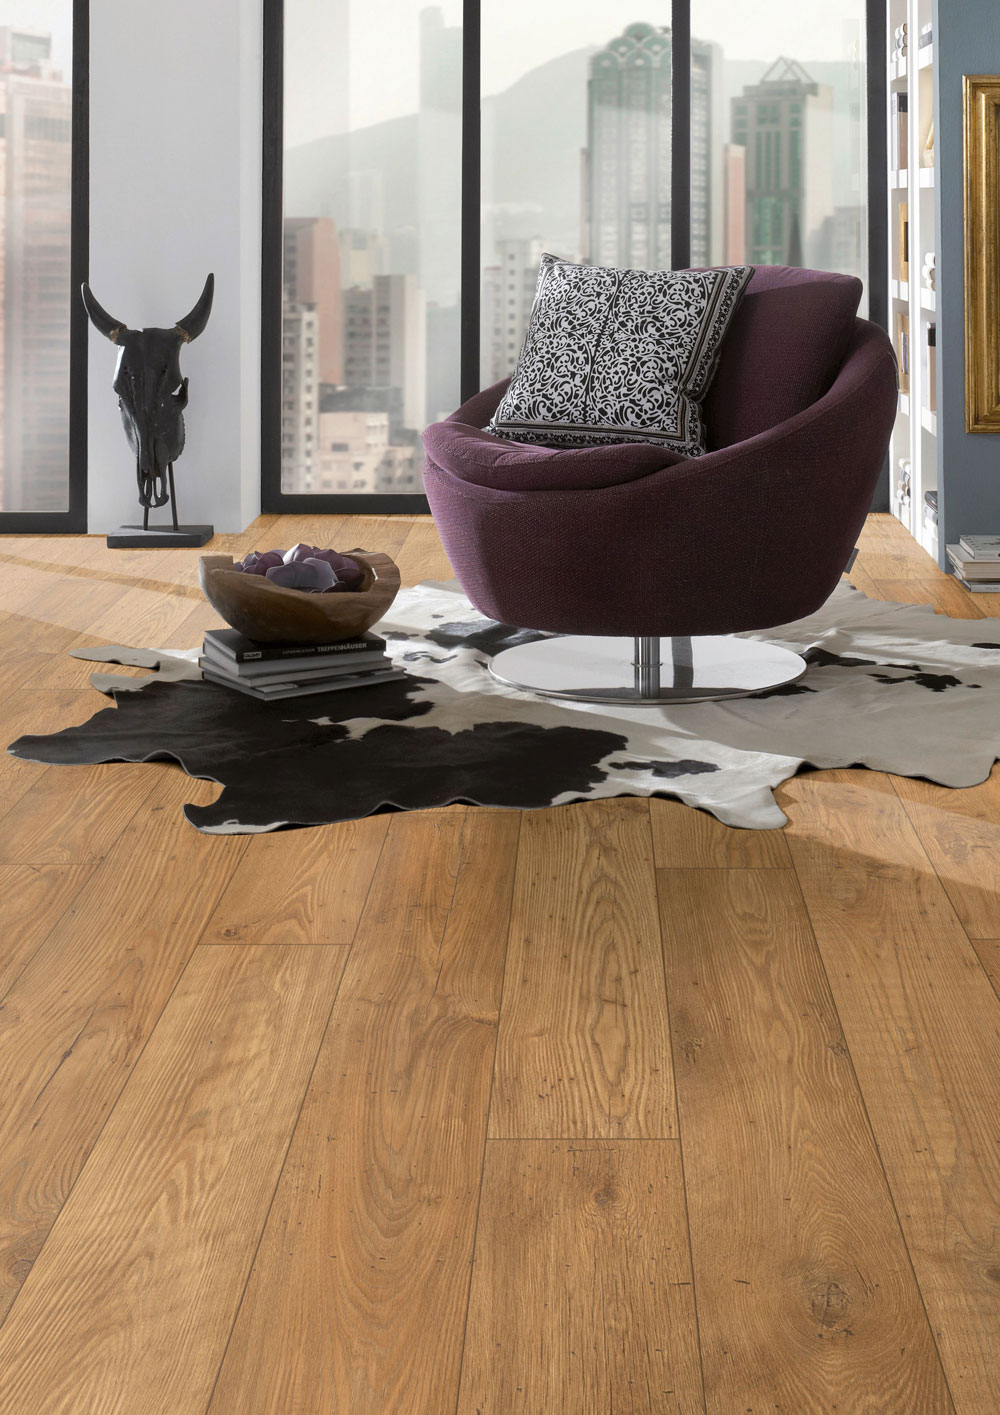 Tawny Chestnut Laminate Flooring Btw Baths Tiles